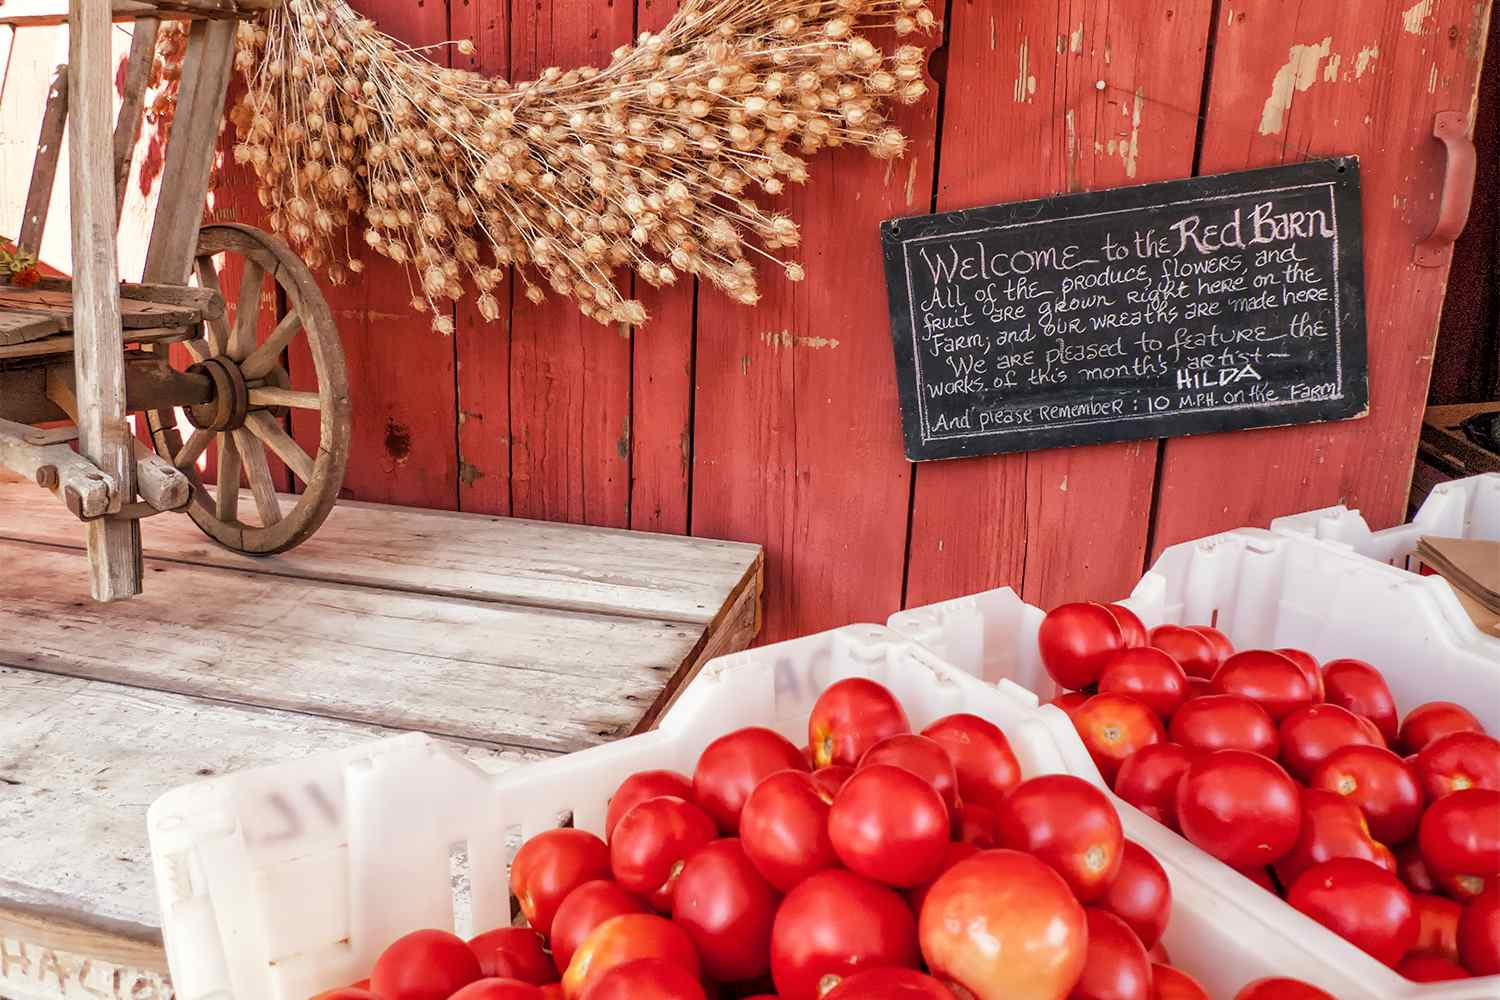 Fresh Produce at the Red Barn Store